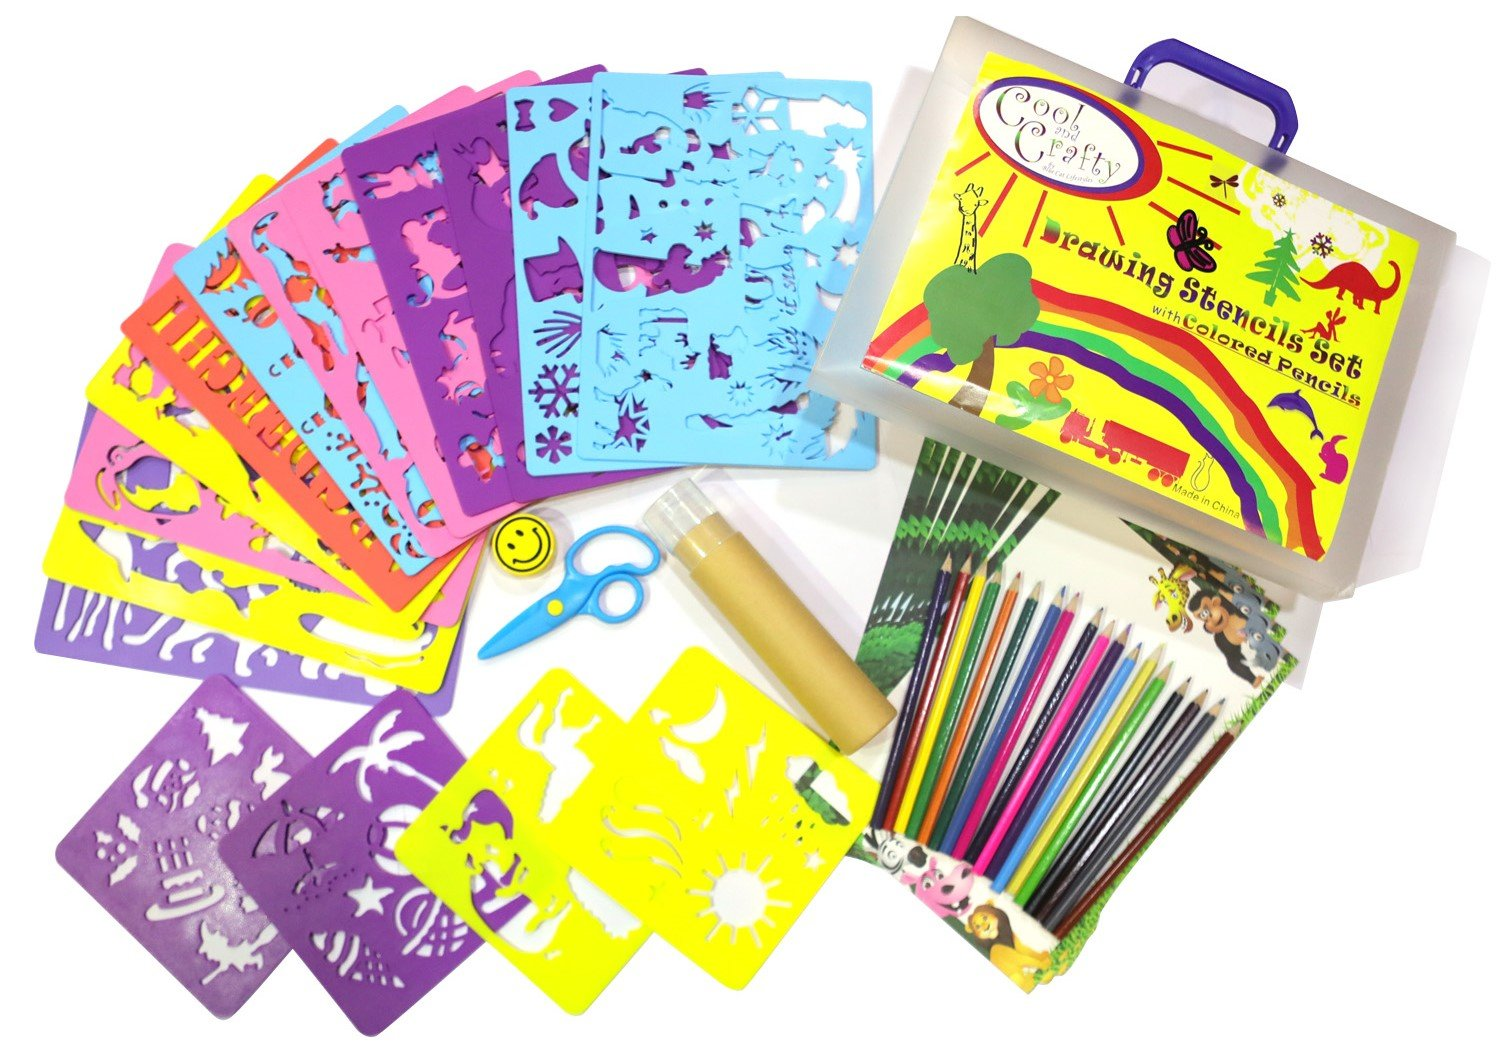 Kids Stencil Set - Drawing stencils with over 250 cute animal and holiday shapes children love - Arts and craft fun for girls and boys aged 3-9 - be amazed at your childs creativity